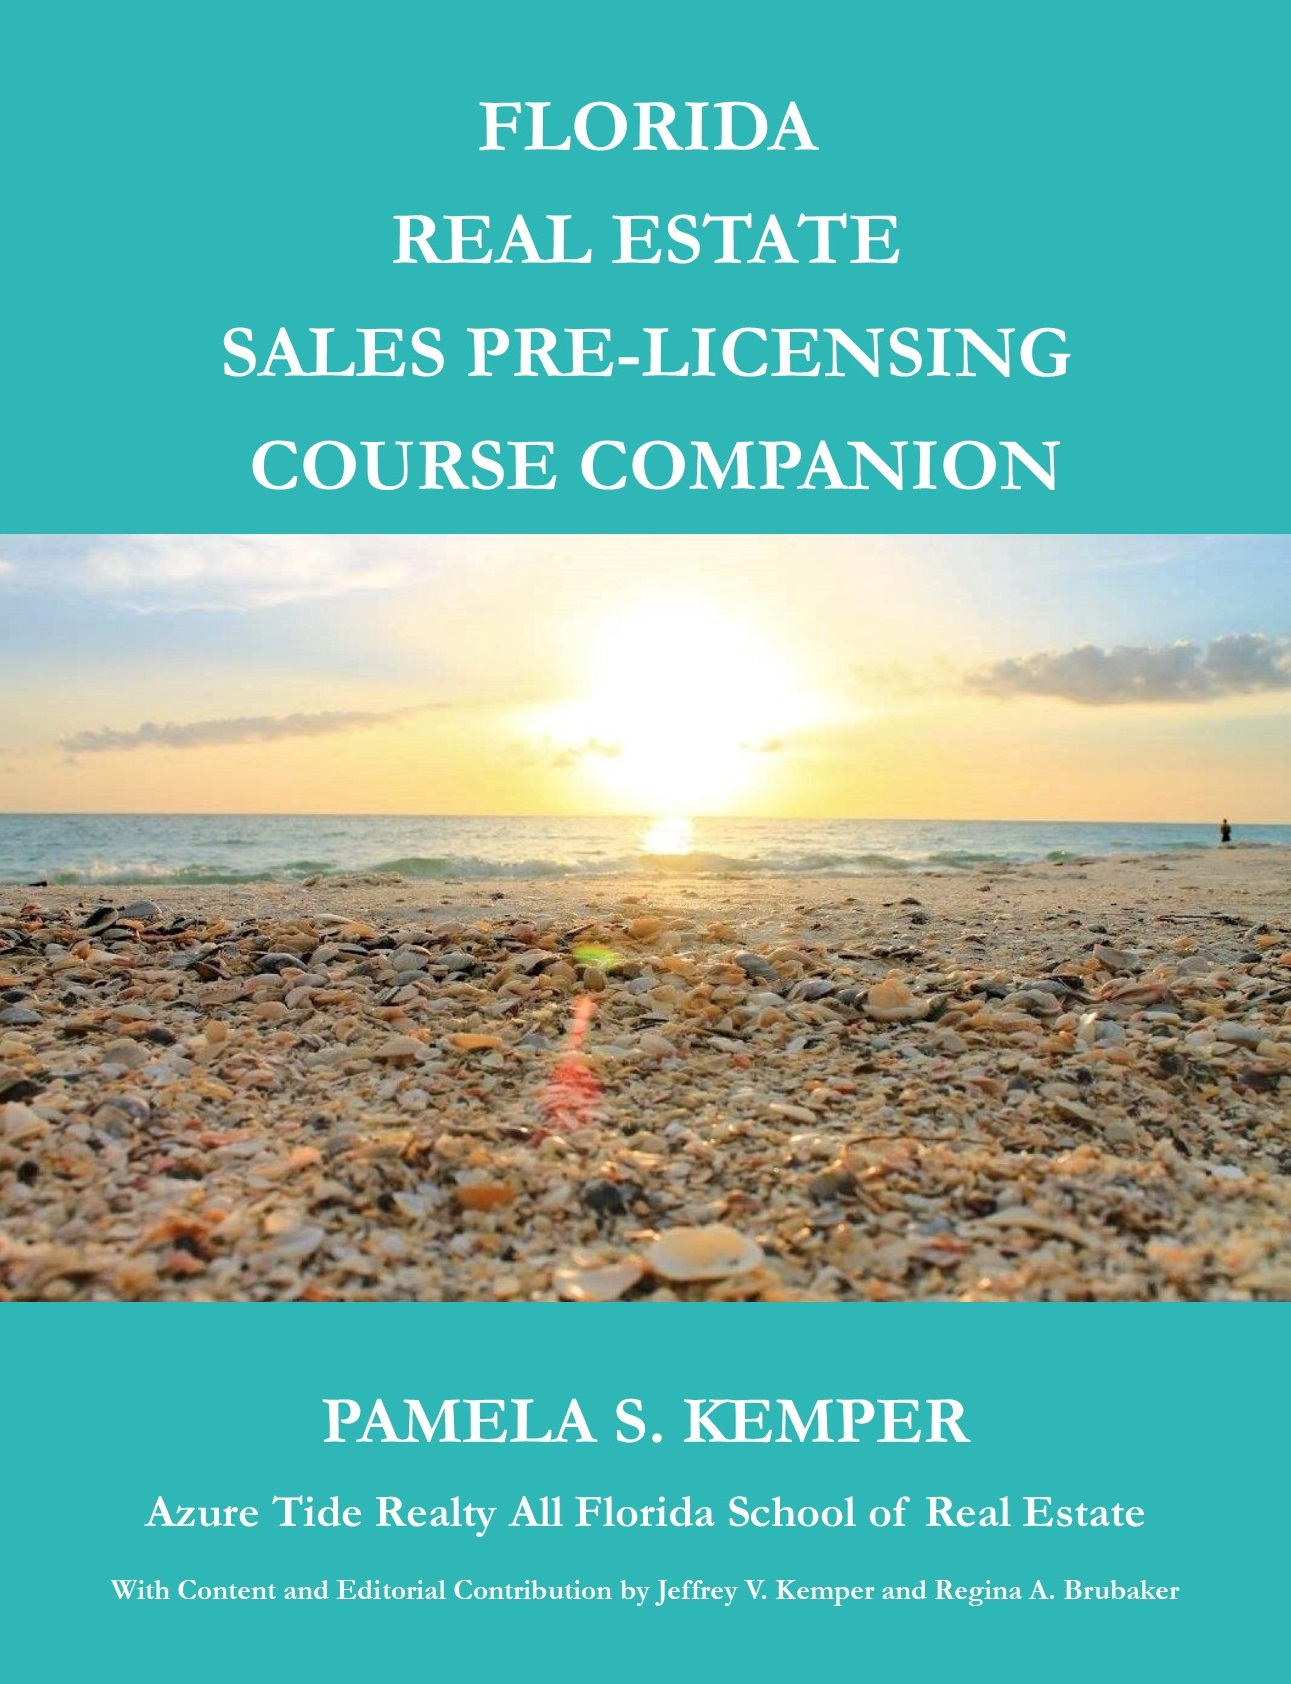 azure tide realty all florida school of real estate reviews